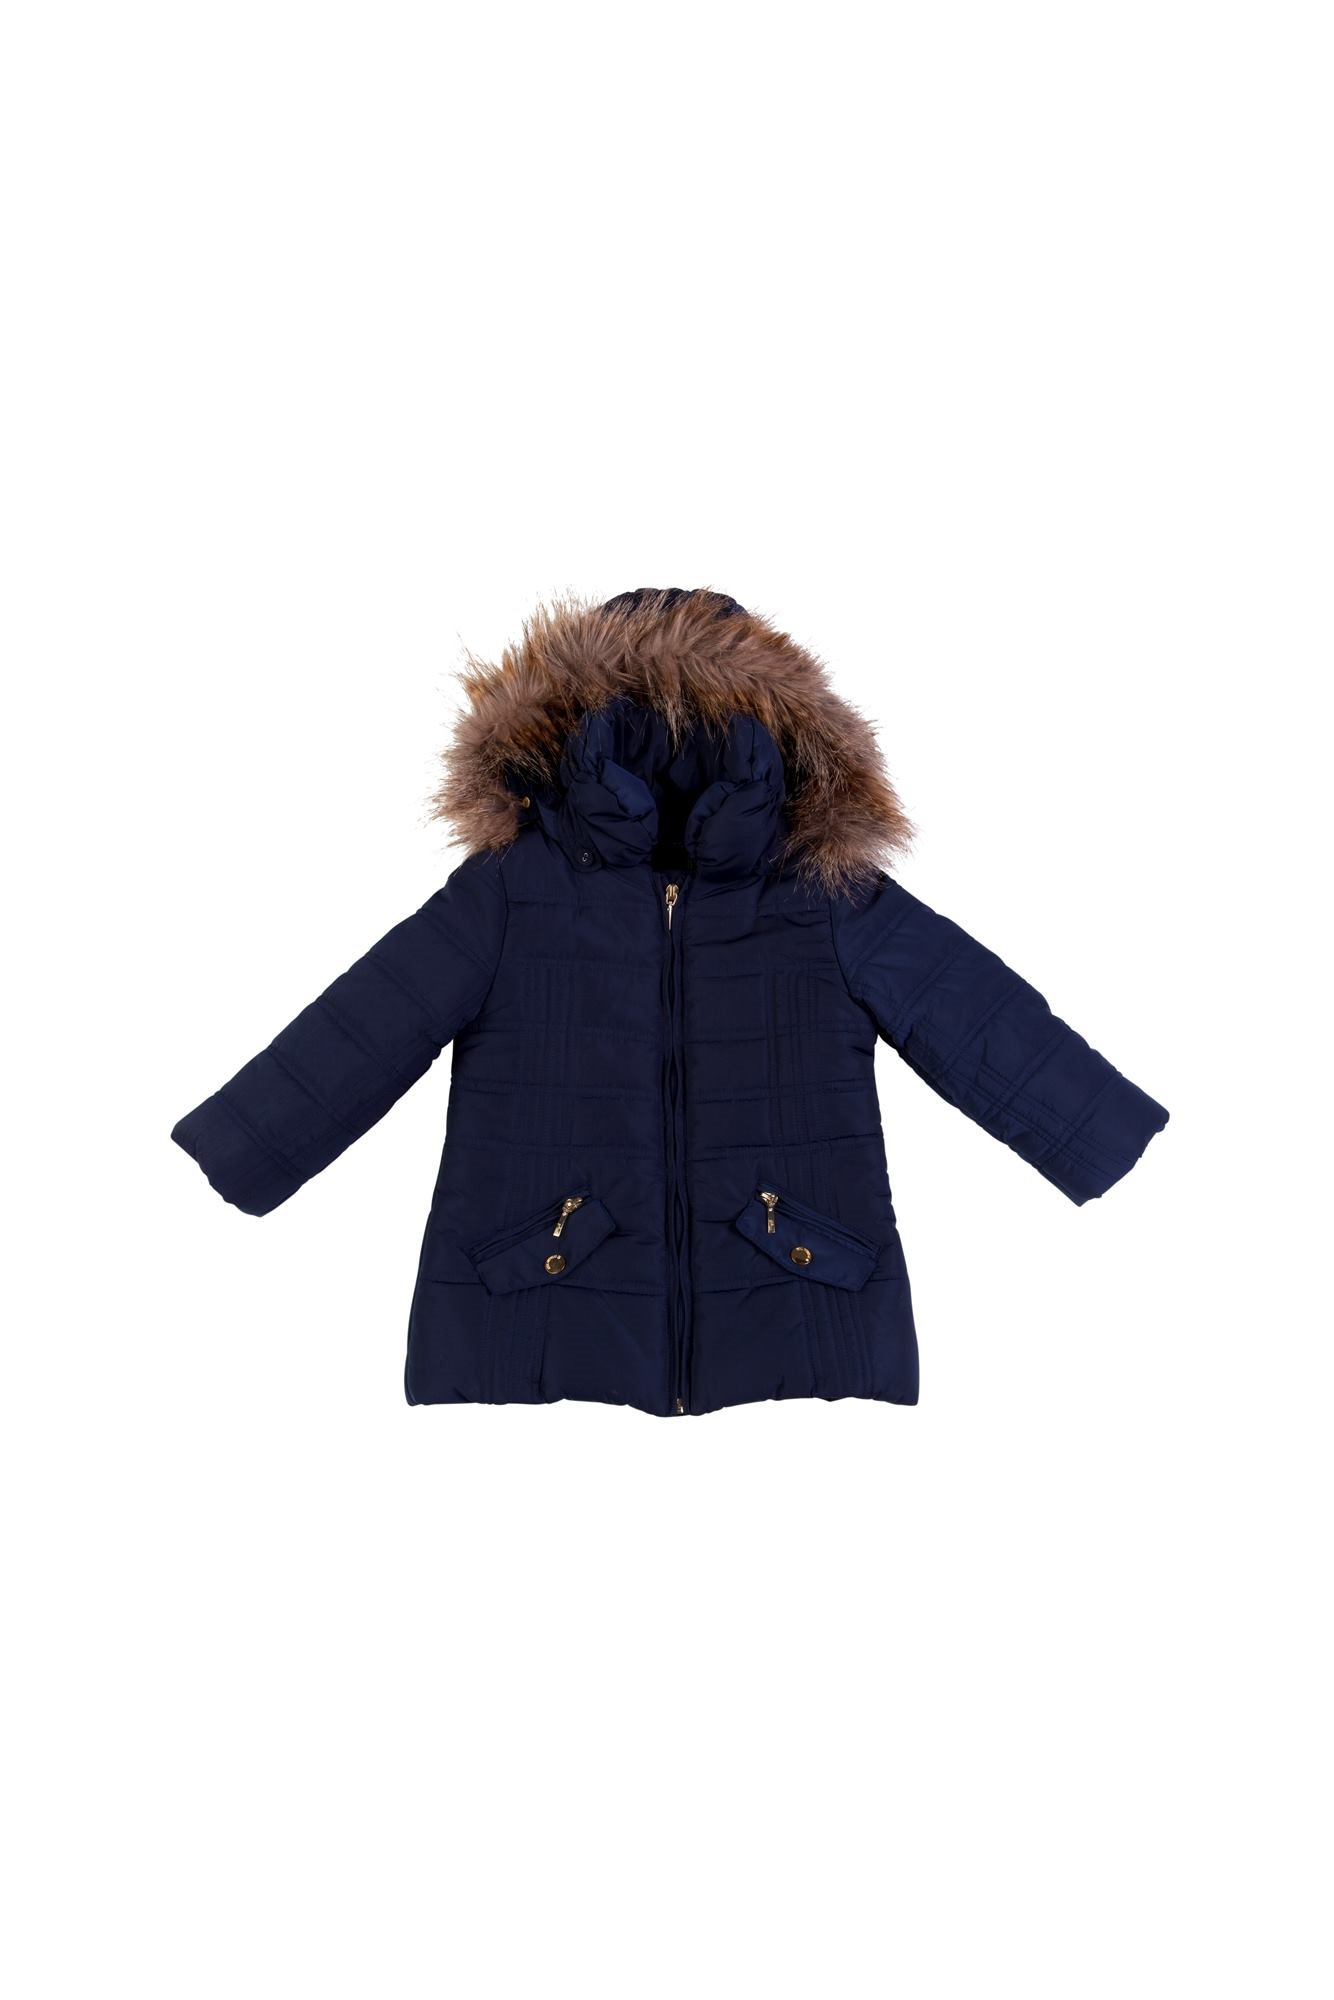 MAYORAL NAVY Girls Coat 4461 | Little VIPs